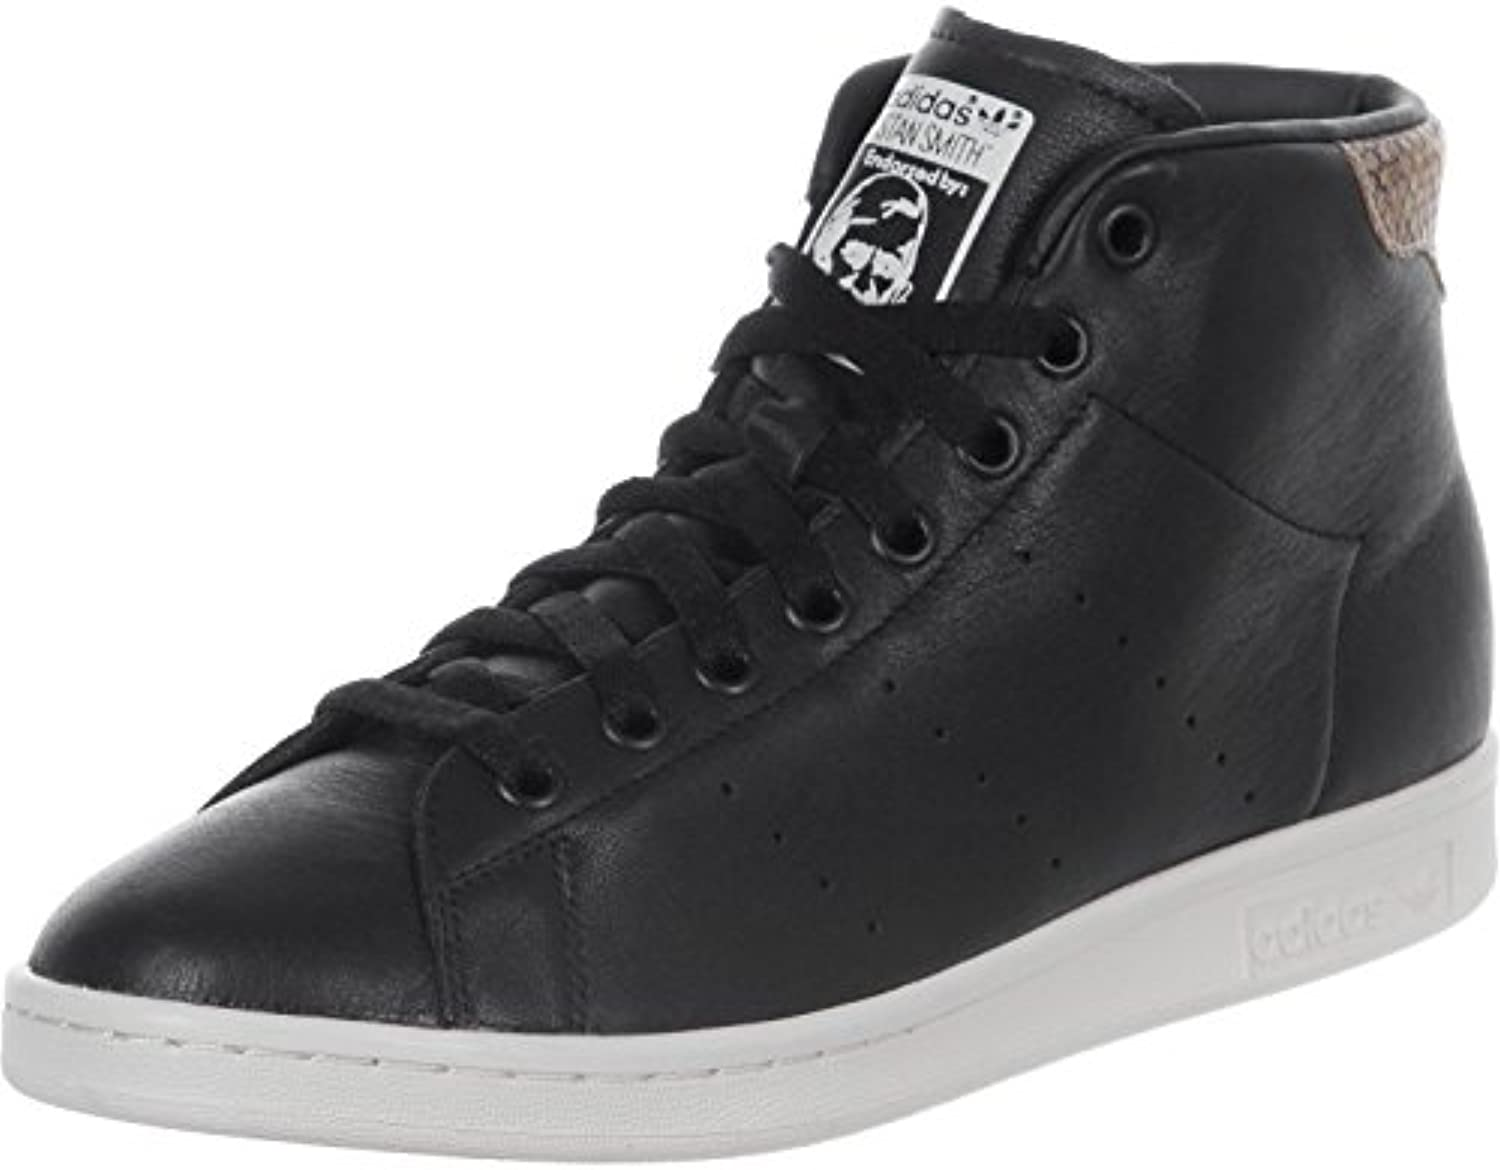 Adidas Stan Smith Mid Schuhe 11 5 black/white